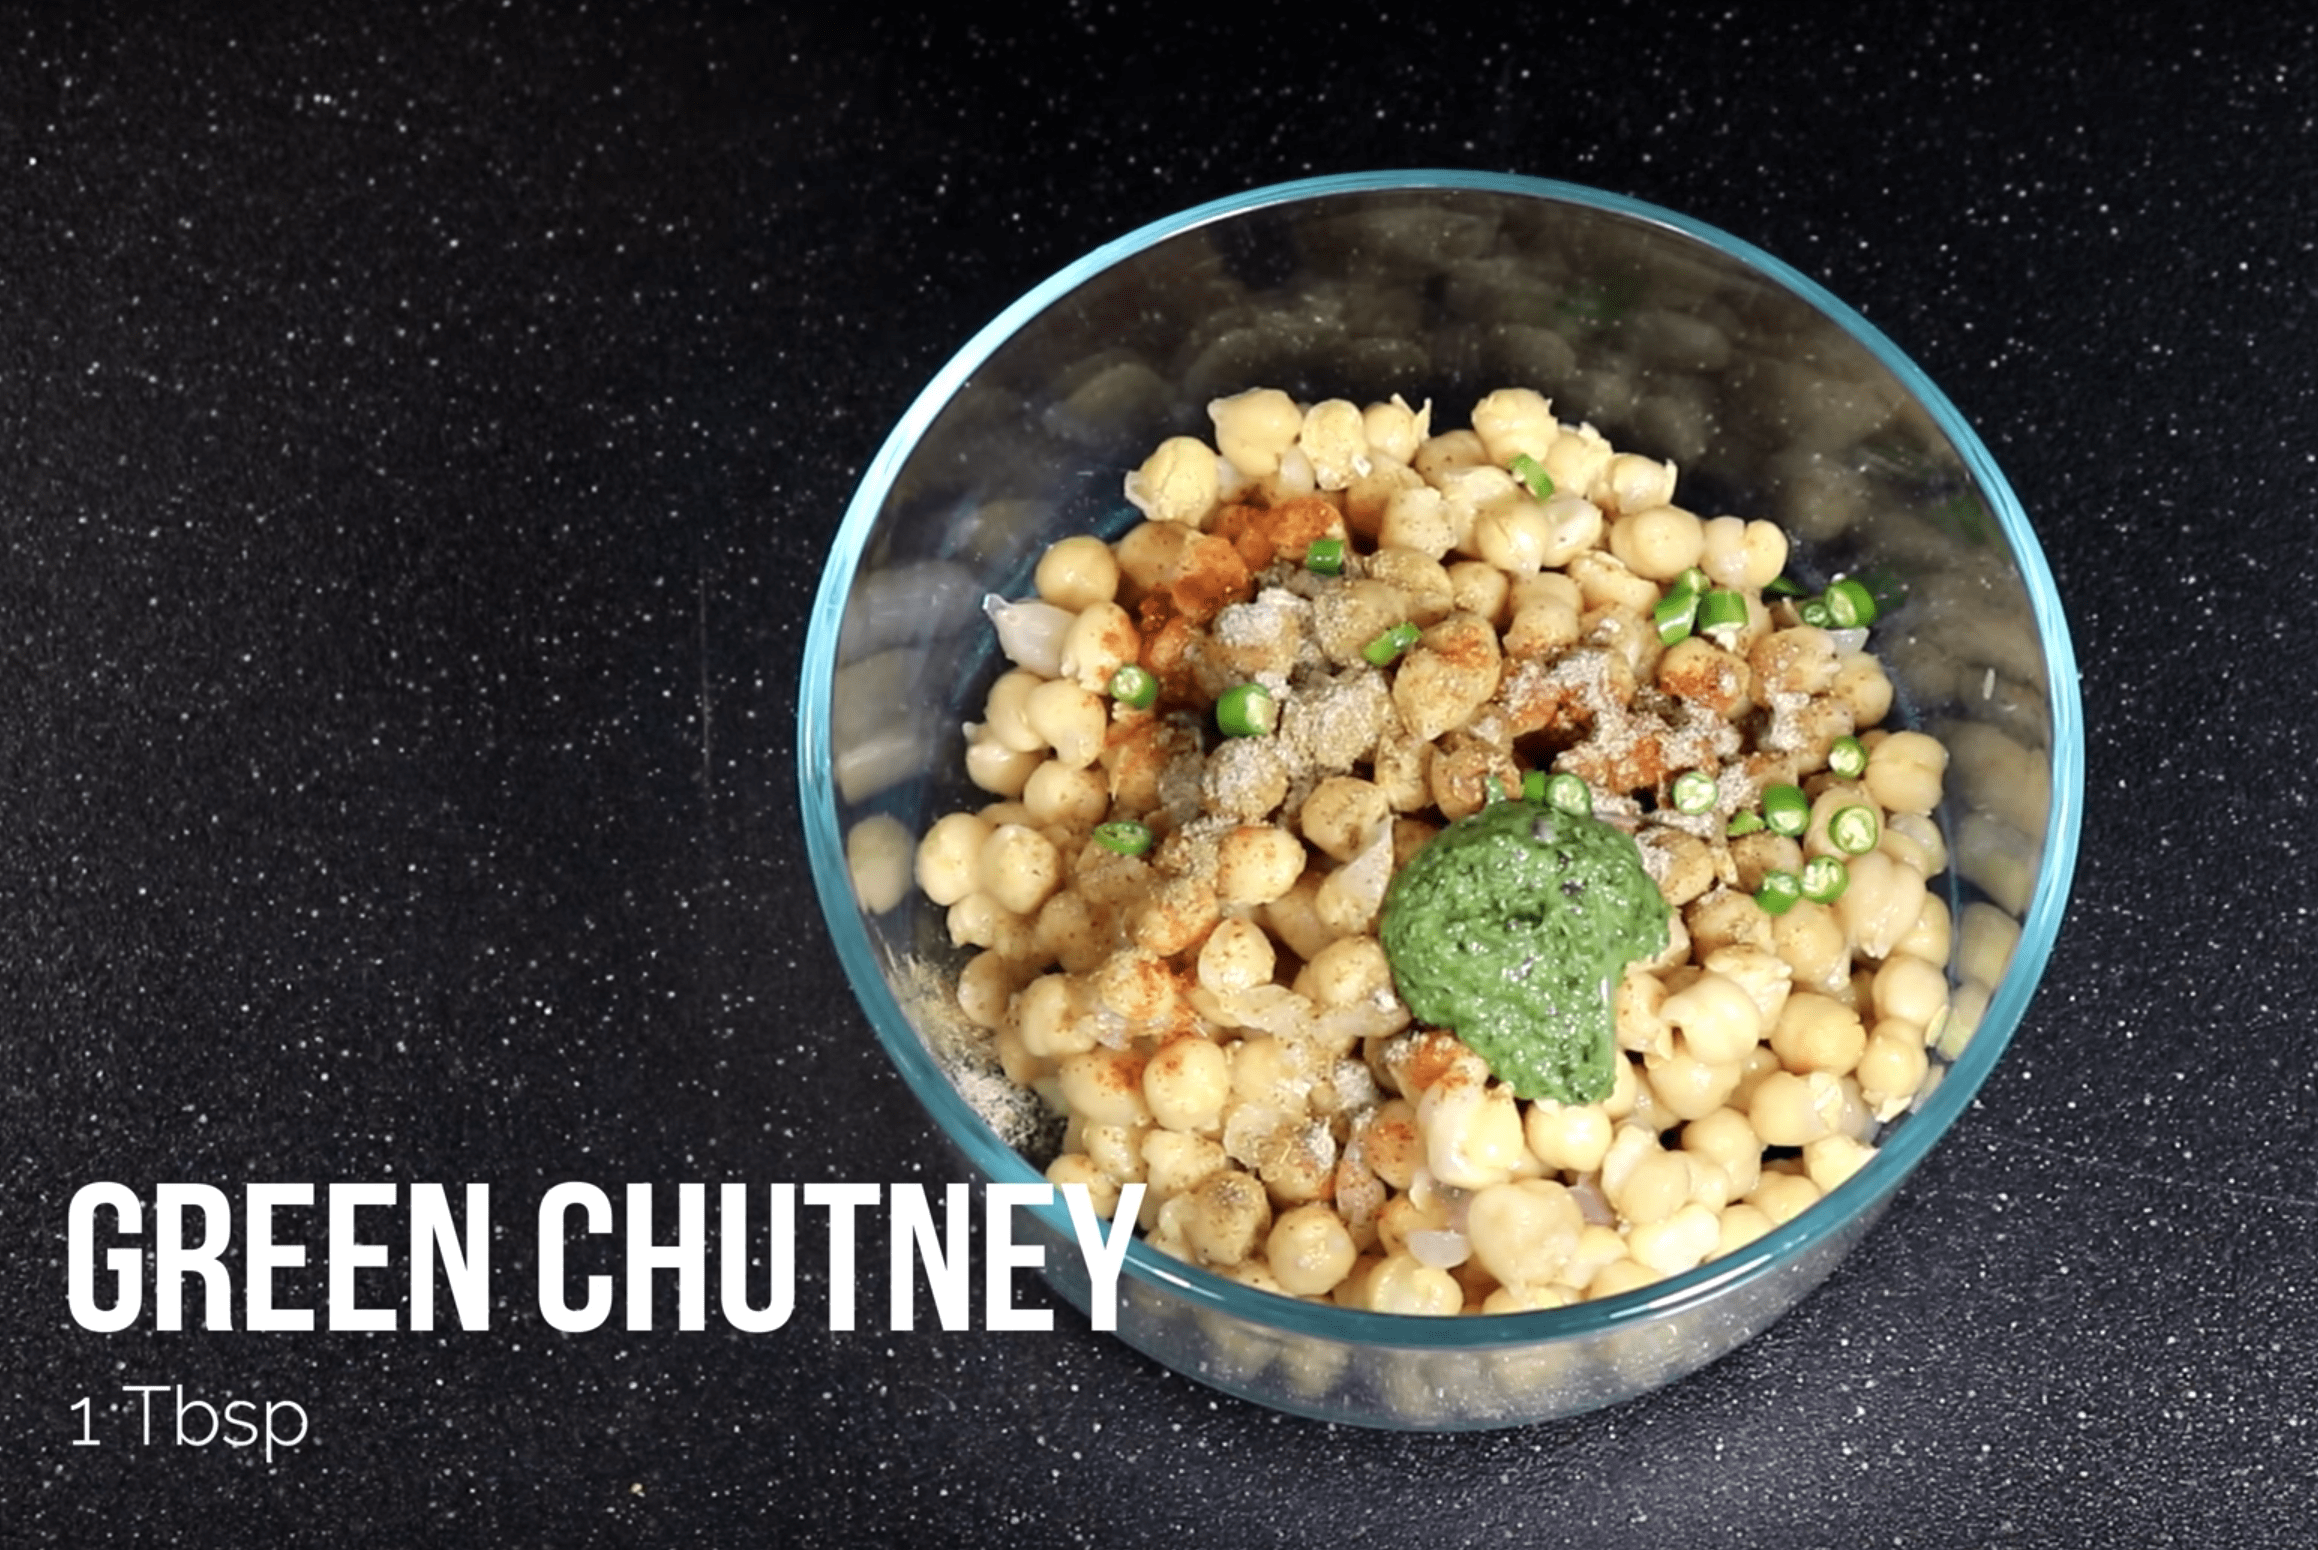 Add 1 TBSP Green Chutney in the mixture for Chana Chaat